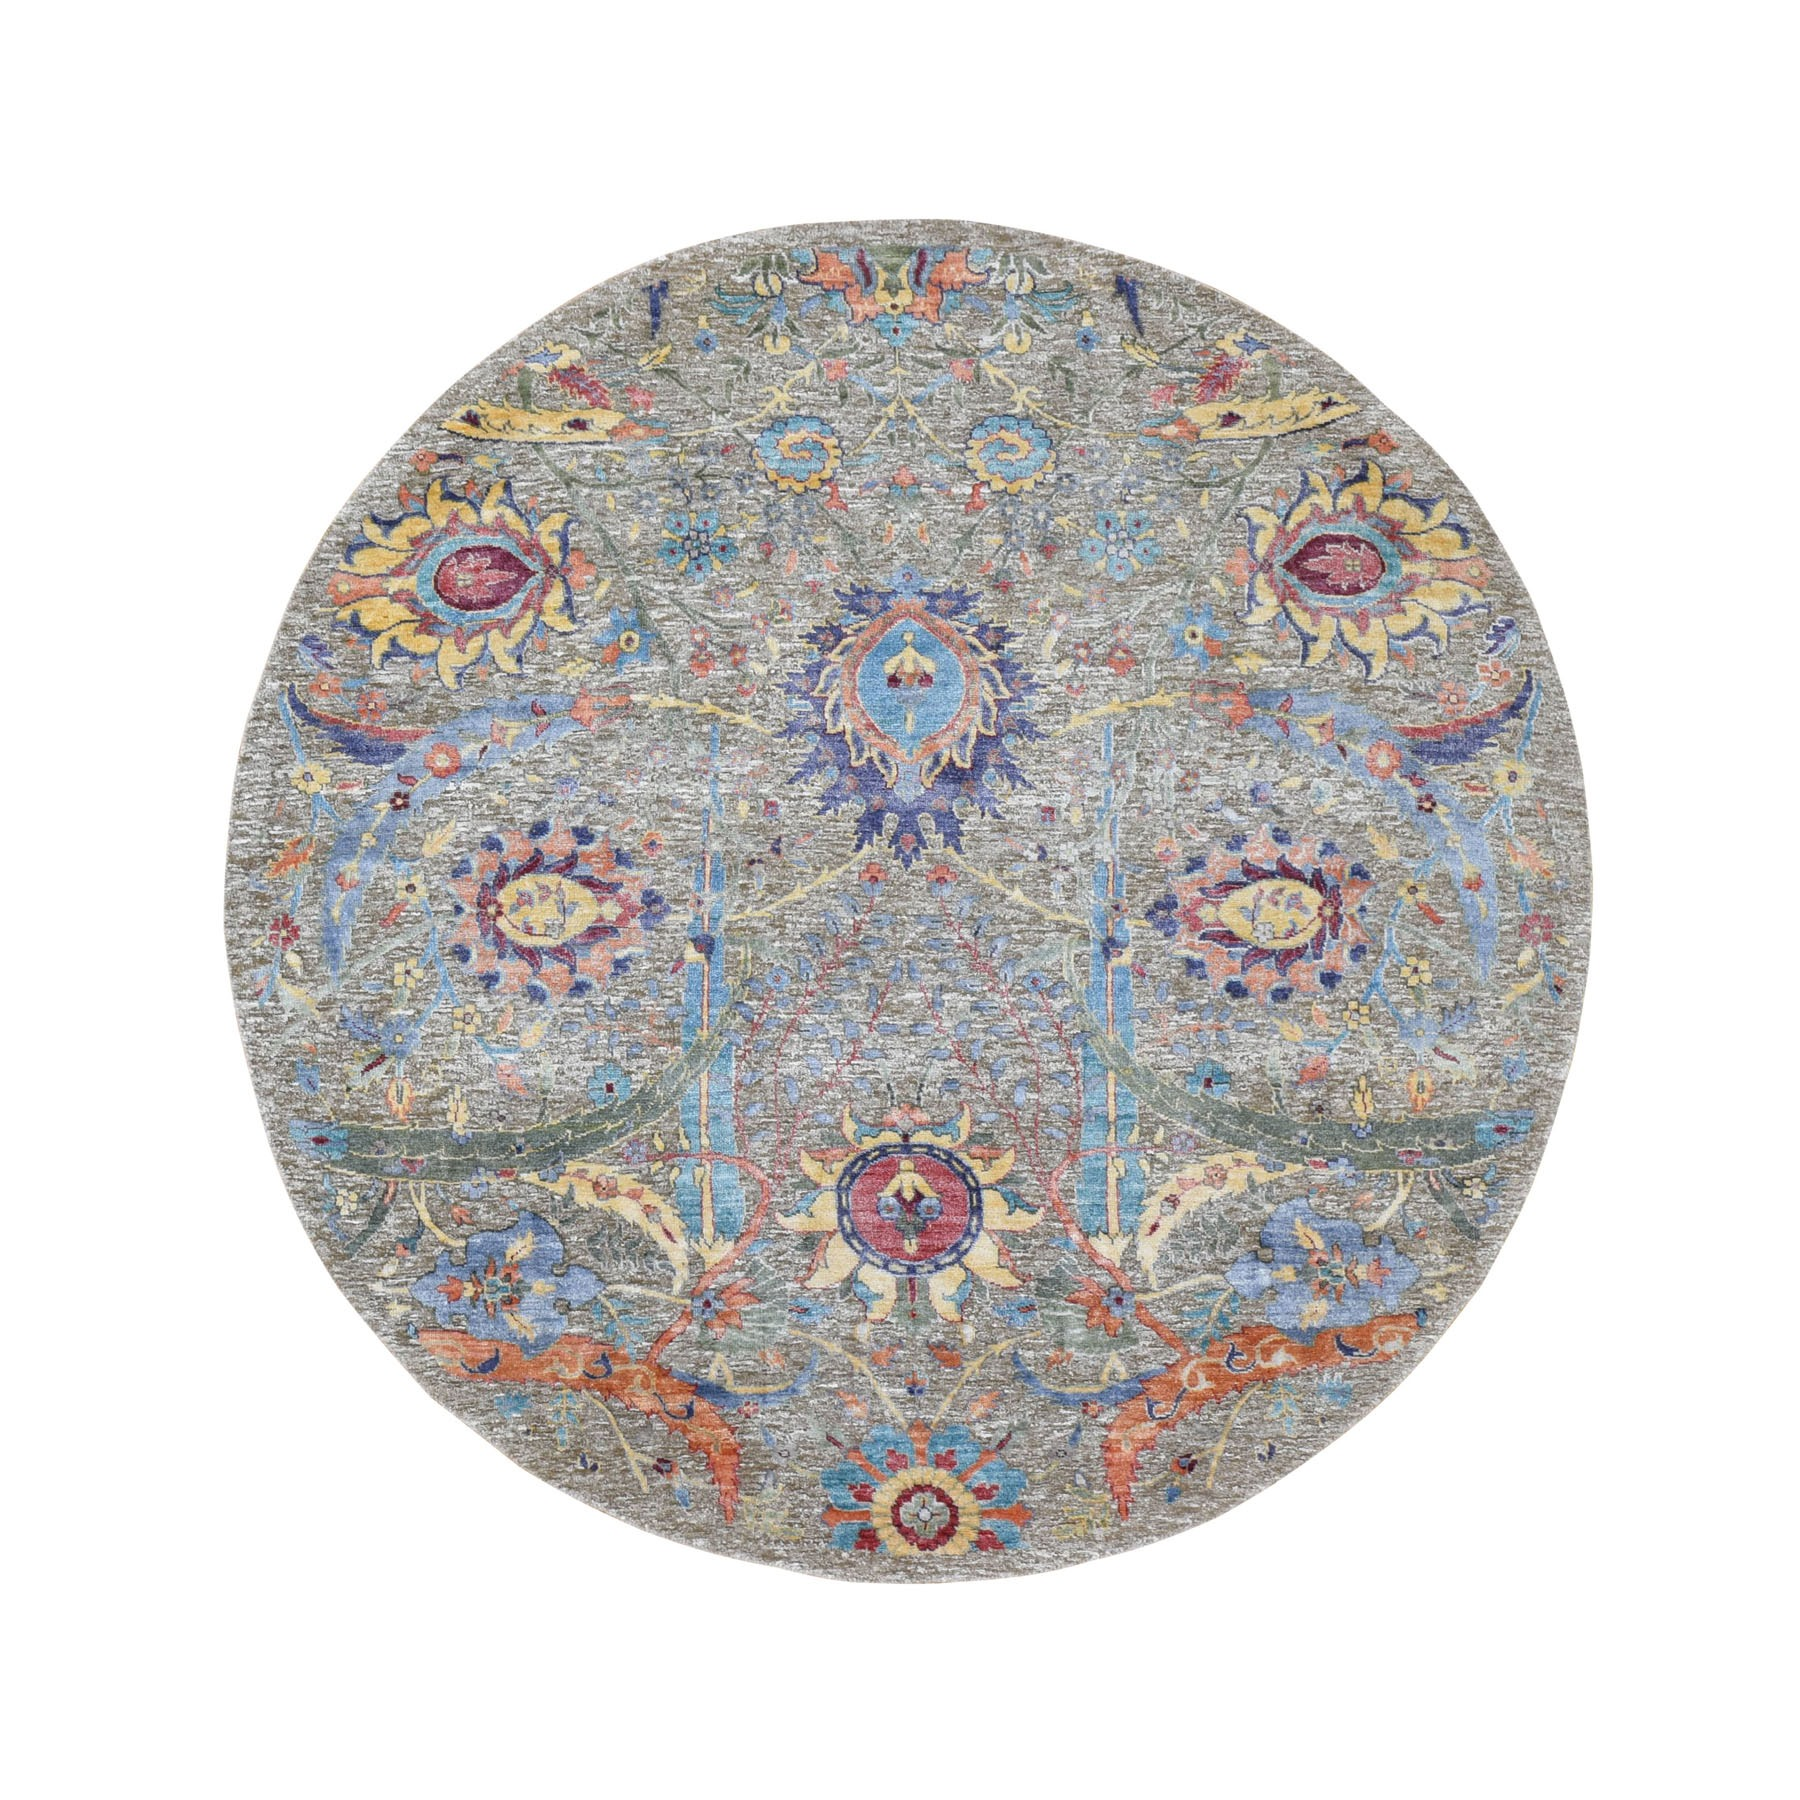 6'X6' Round Sickle Leaf Design Silk With Textured Wool Hand Knotted Oriental Rug moad89ac